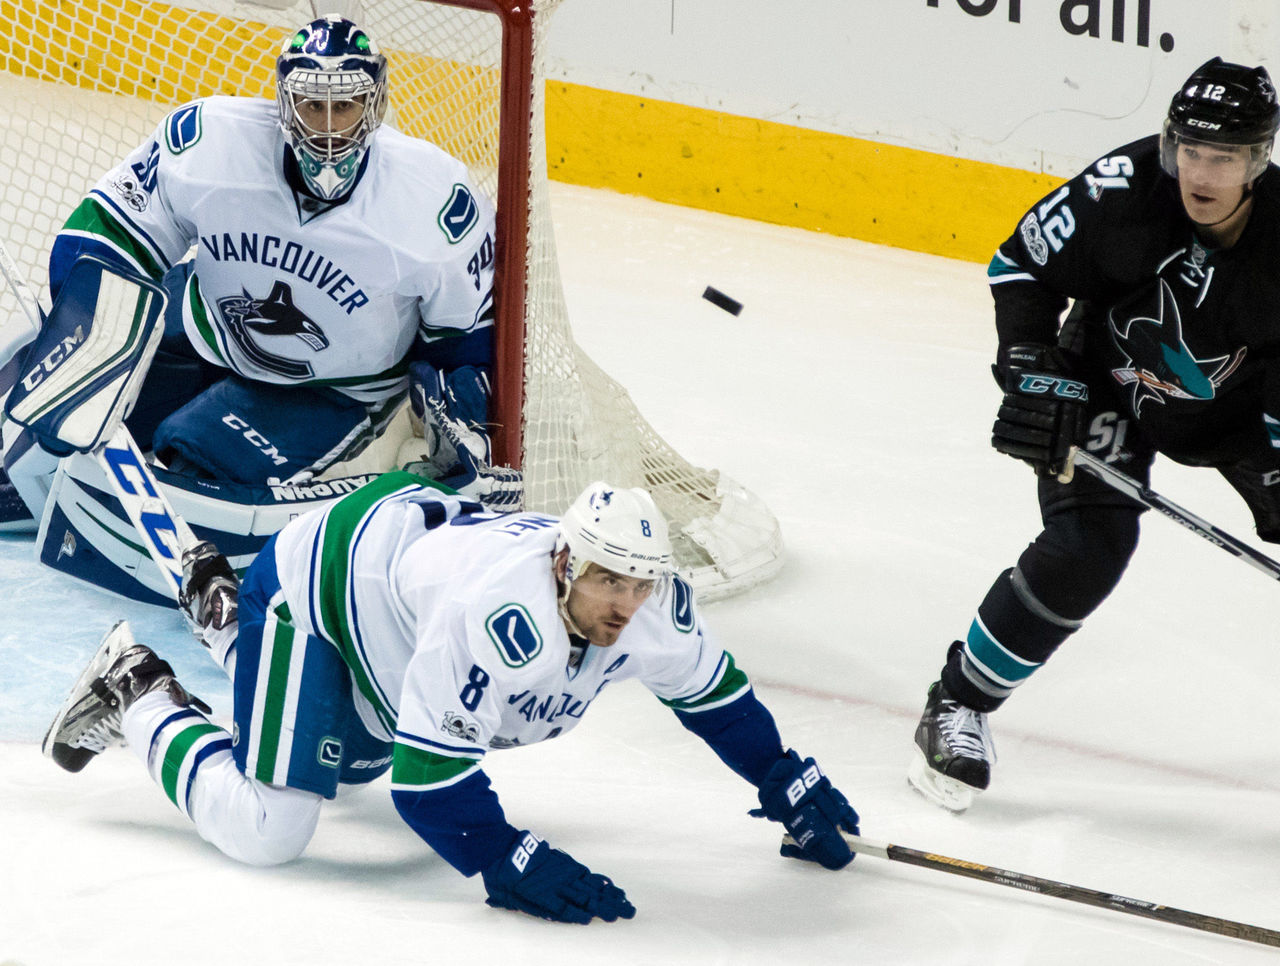 Cropped 2017 03 03t062123z 87568372 nocid rtrmadp 3 nhl vancouver canucks at san jose sharks